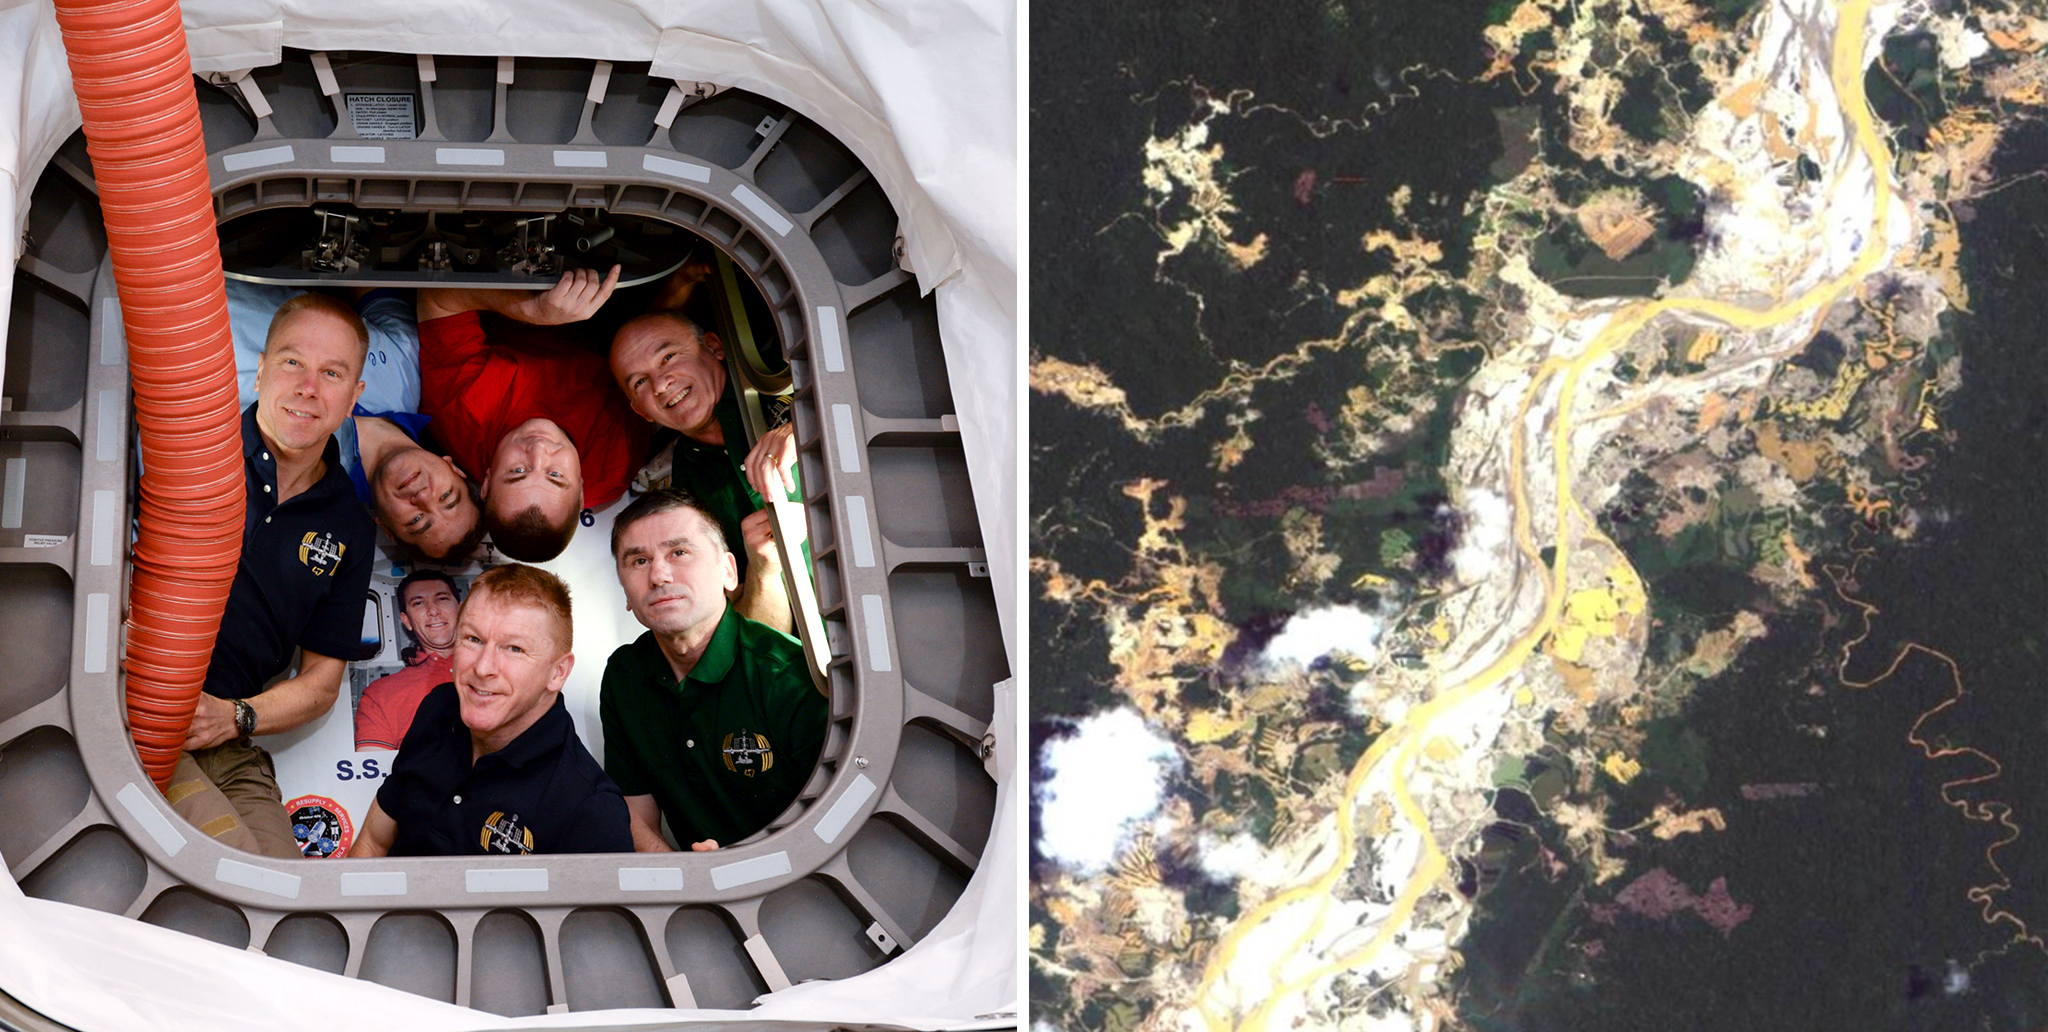 Left: NASA, Roscosmos and ESA crew members of Expedition 47. Right: Mines in Peru as photographed by a Nigerian satellite.